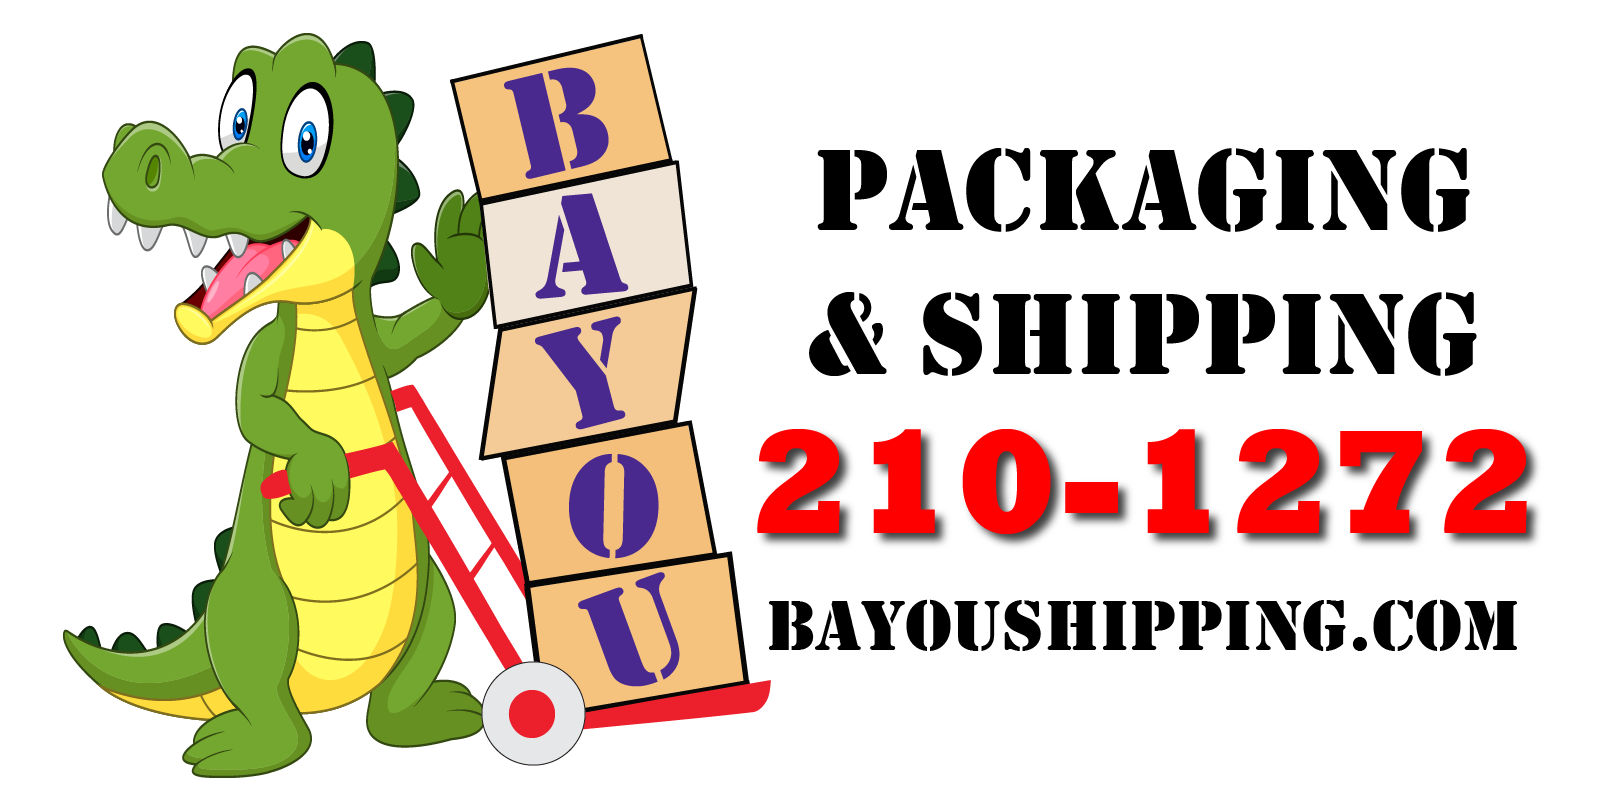 free download Collection shipping packing and. Louisiana clipart bayou clipart.